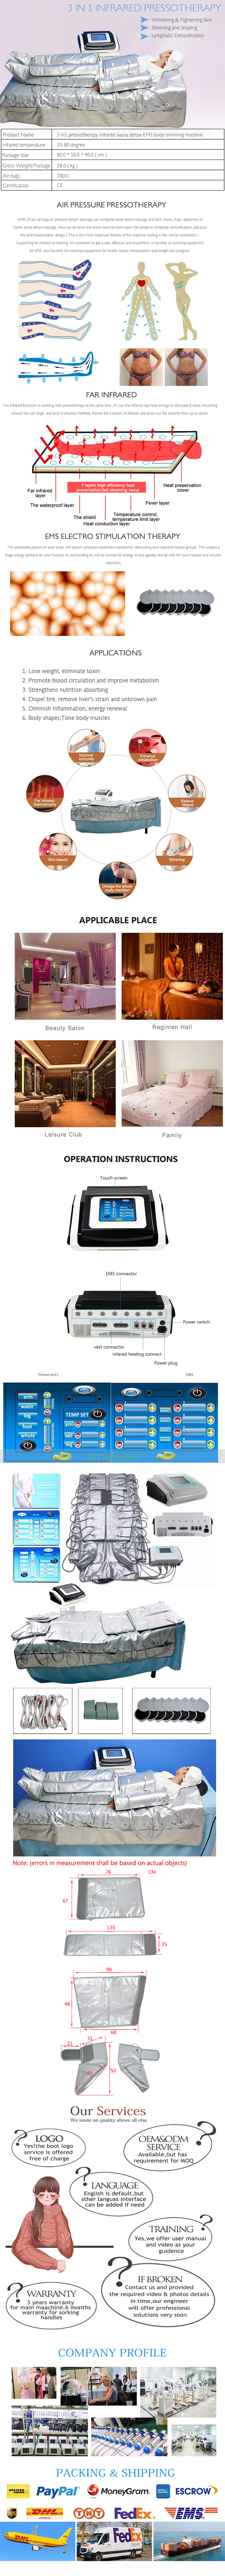 Pressotherapy machine 3 in 1 SA01 product details